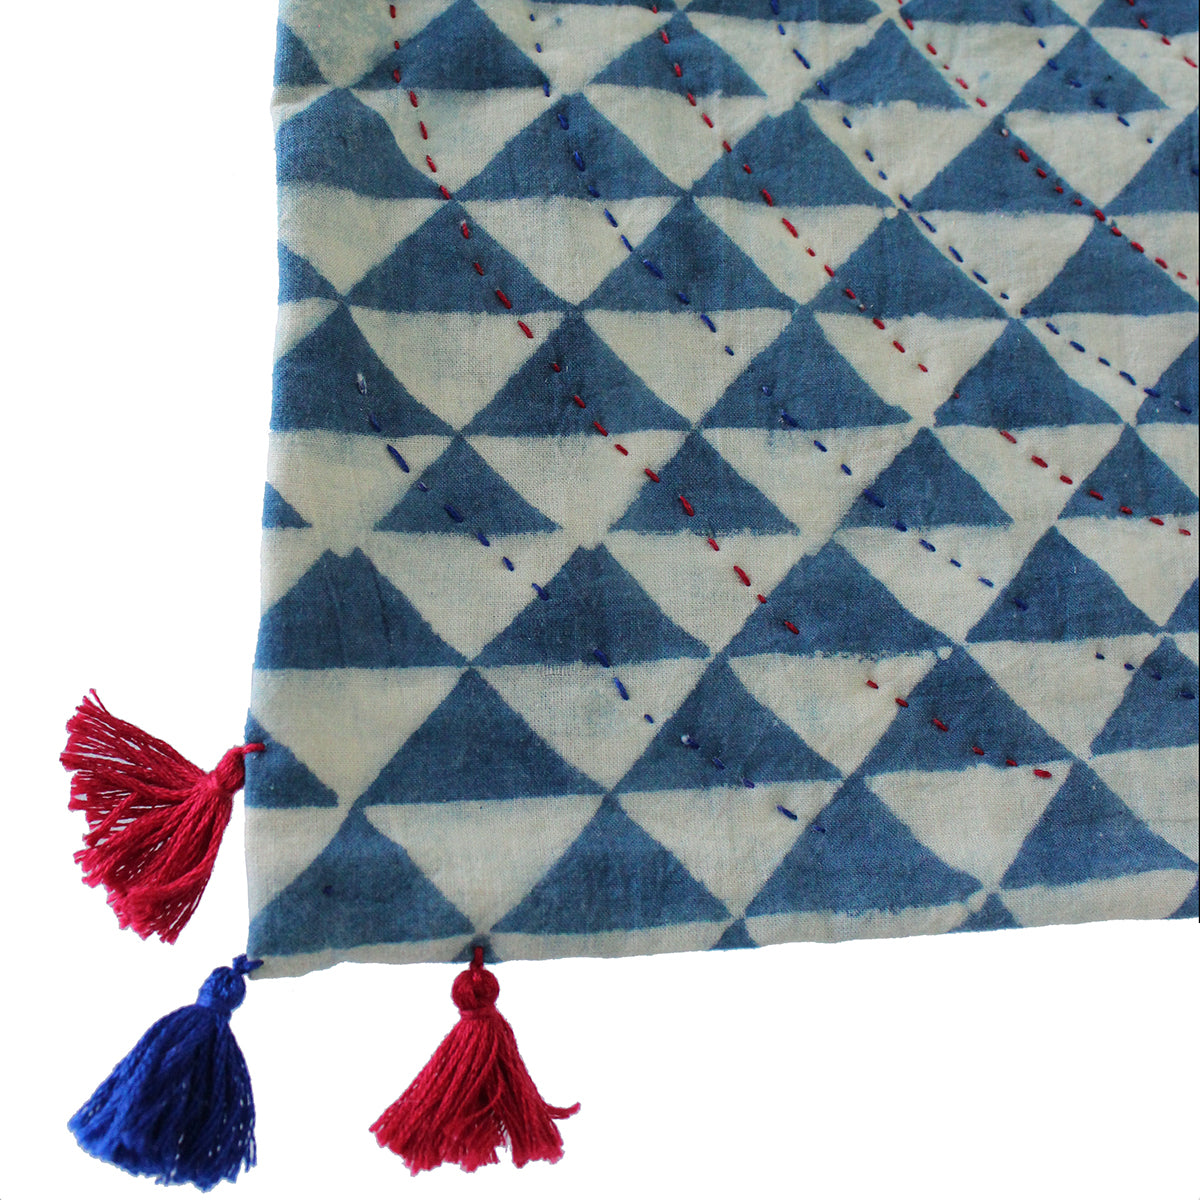 Corner of indigo dyed quilt with two red and one blue tassel